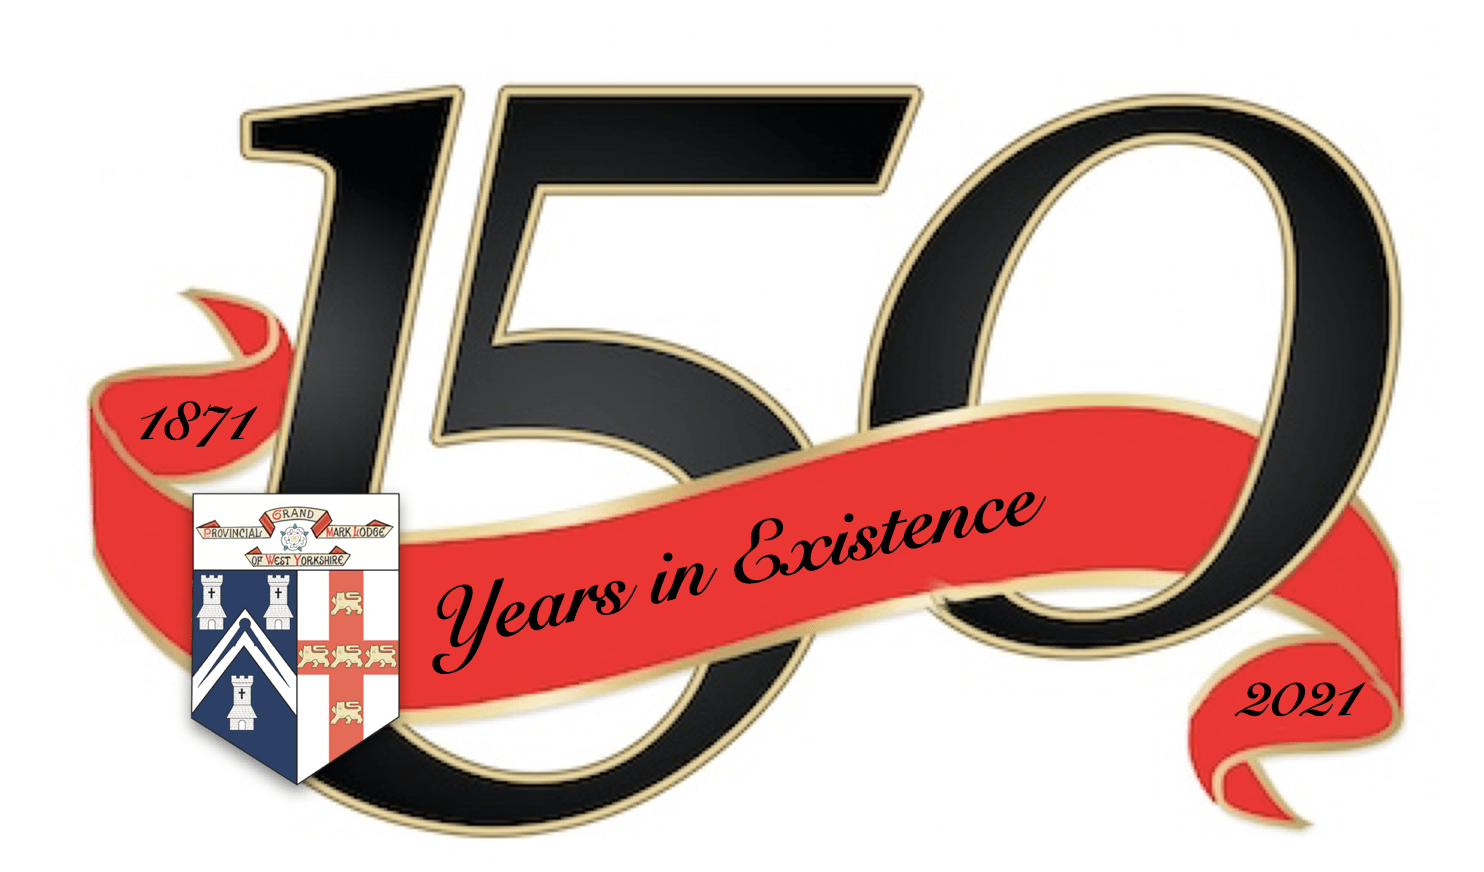 Sesquicentenary of the Province